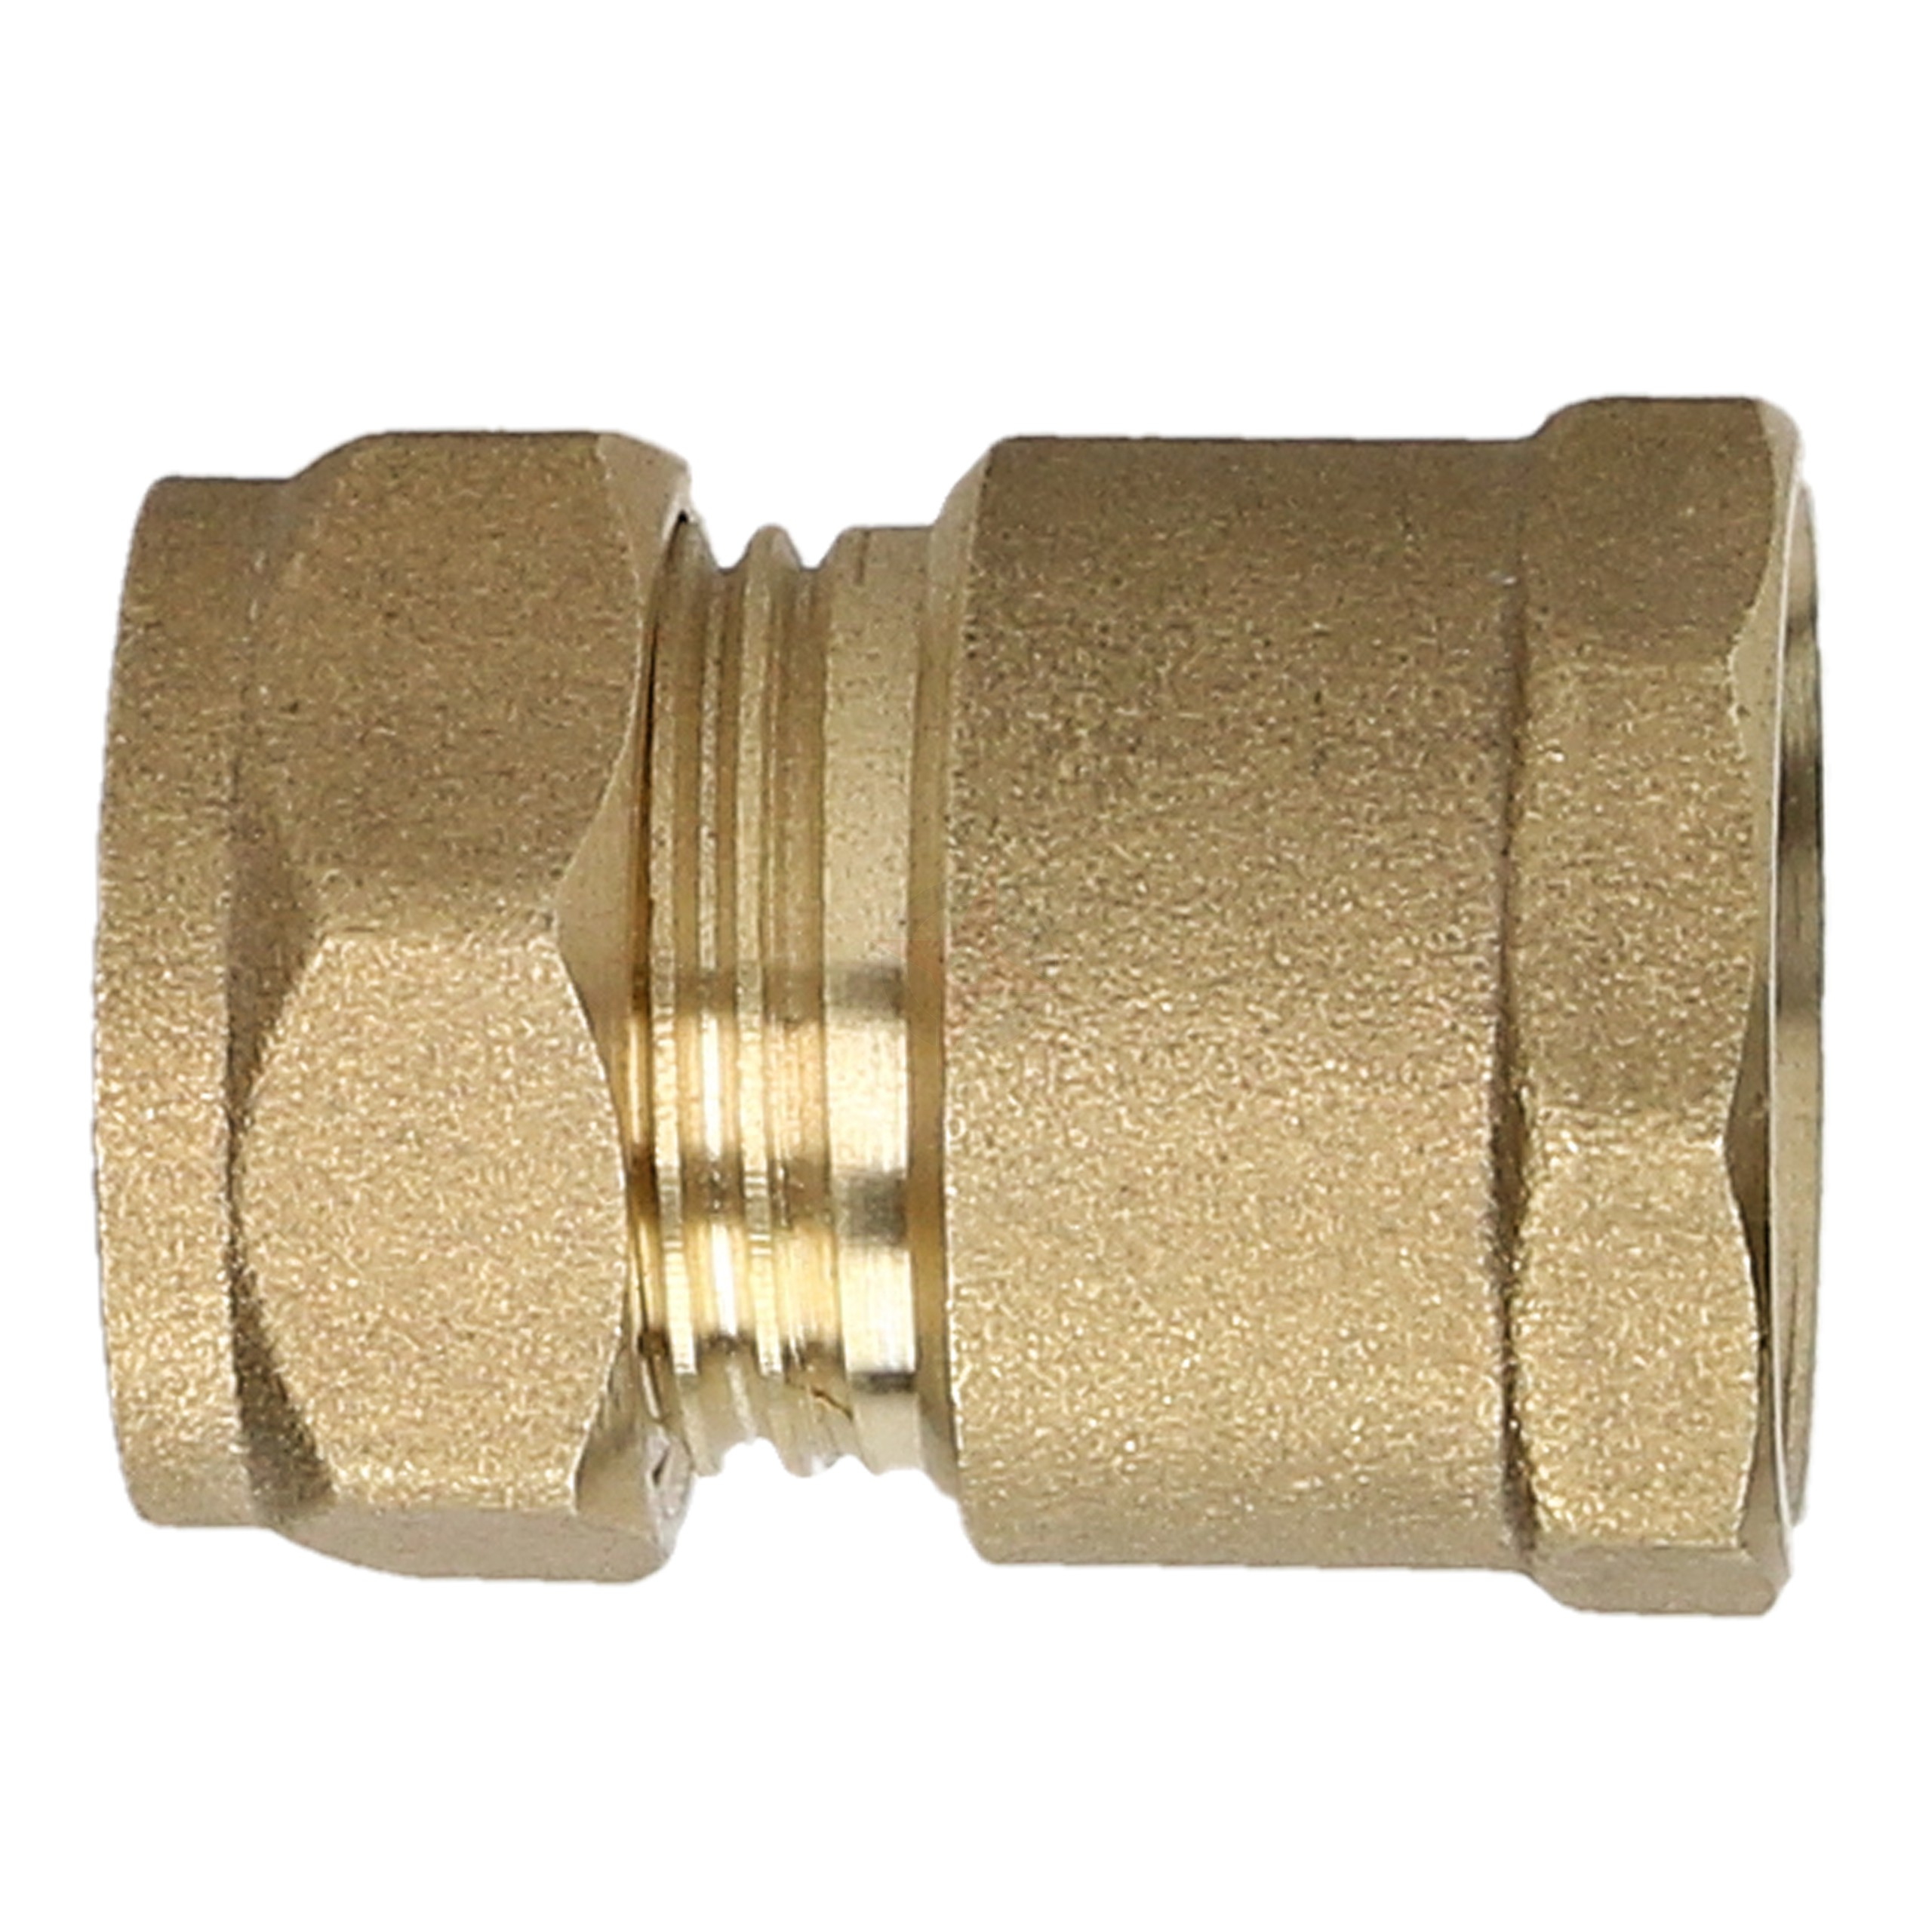 "Compression Adaptor 15mm x 1/2"" Female Iron Straight"